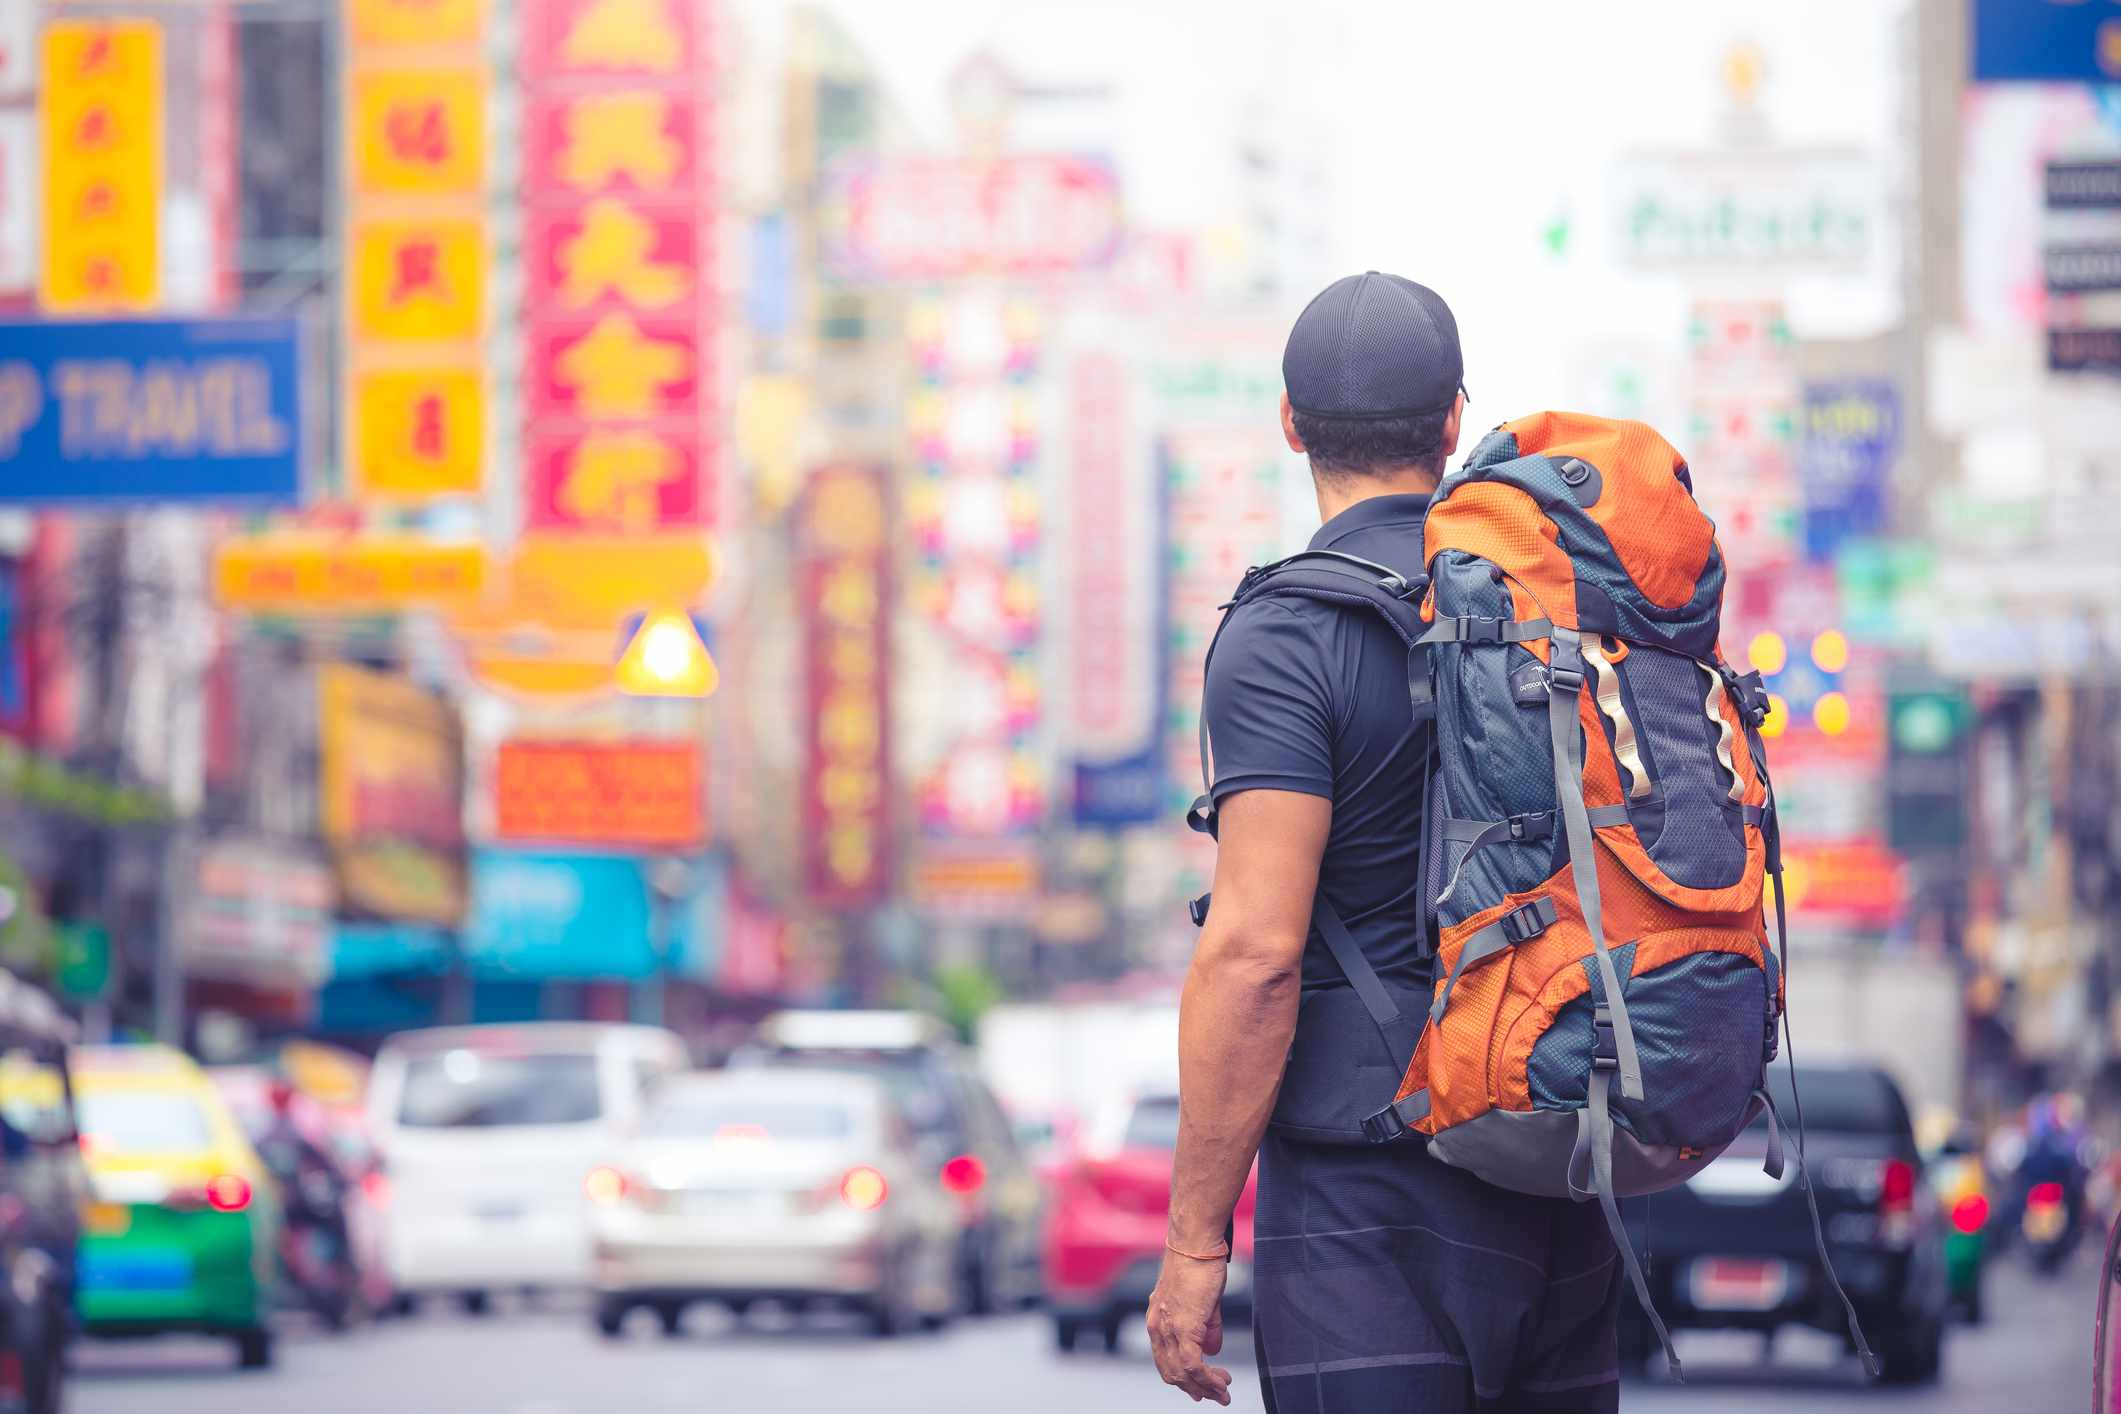 Tourist backpacker visiting a city in southeast Asia